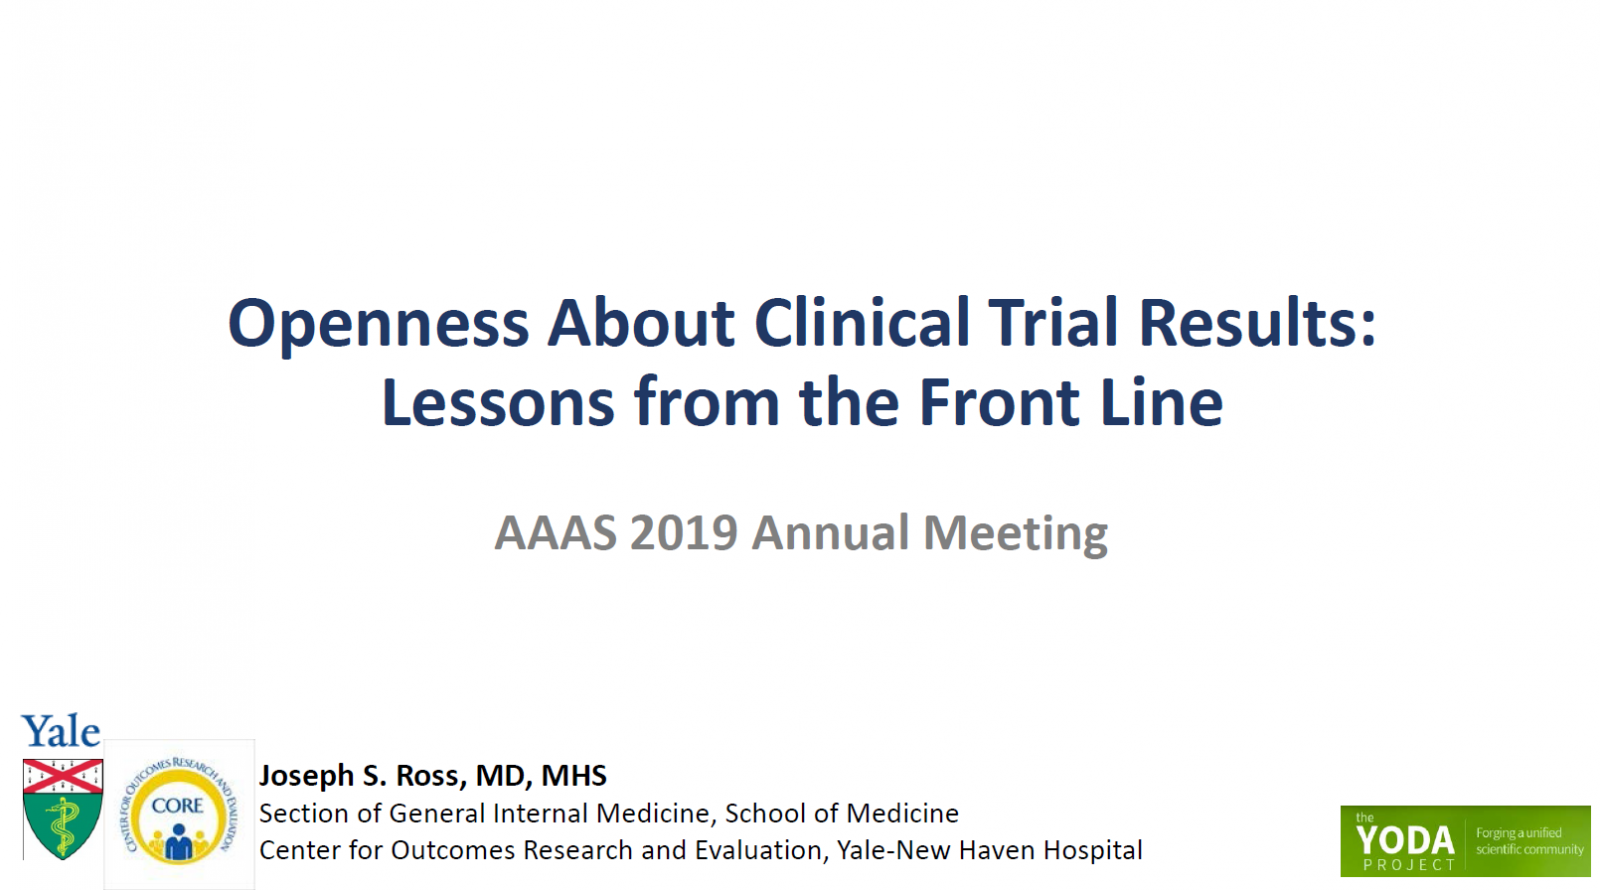 Openness About Clinical Trial Results: Lessons from the Front Line